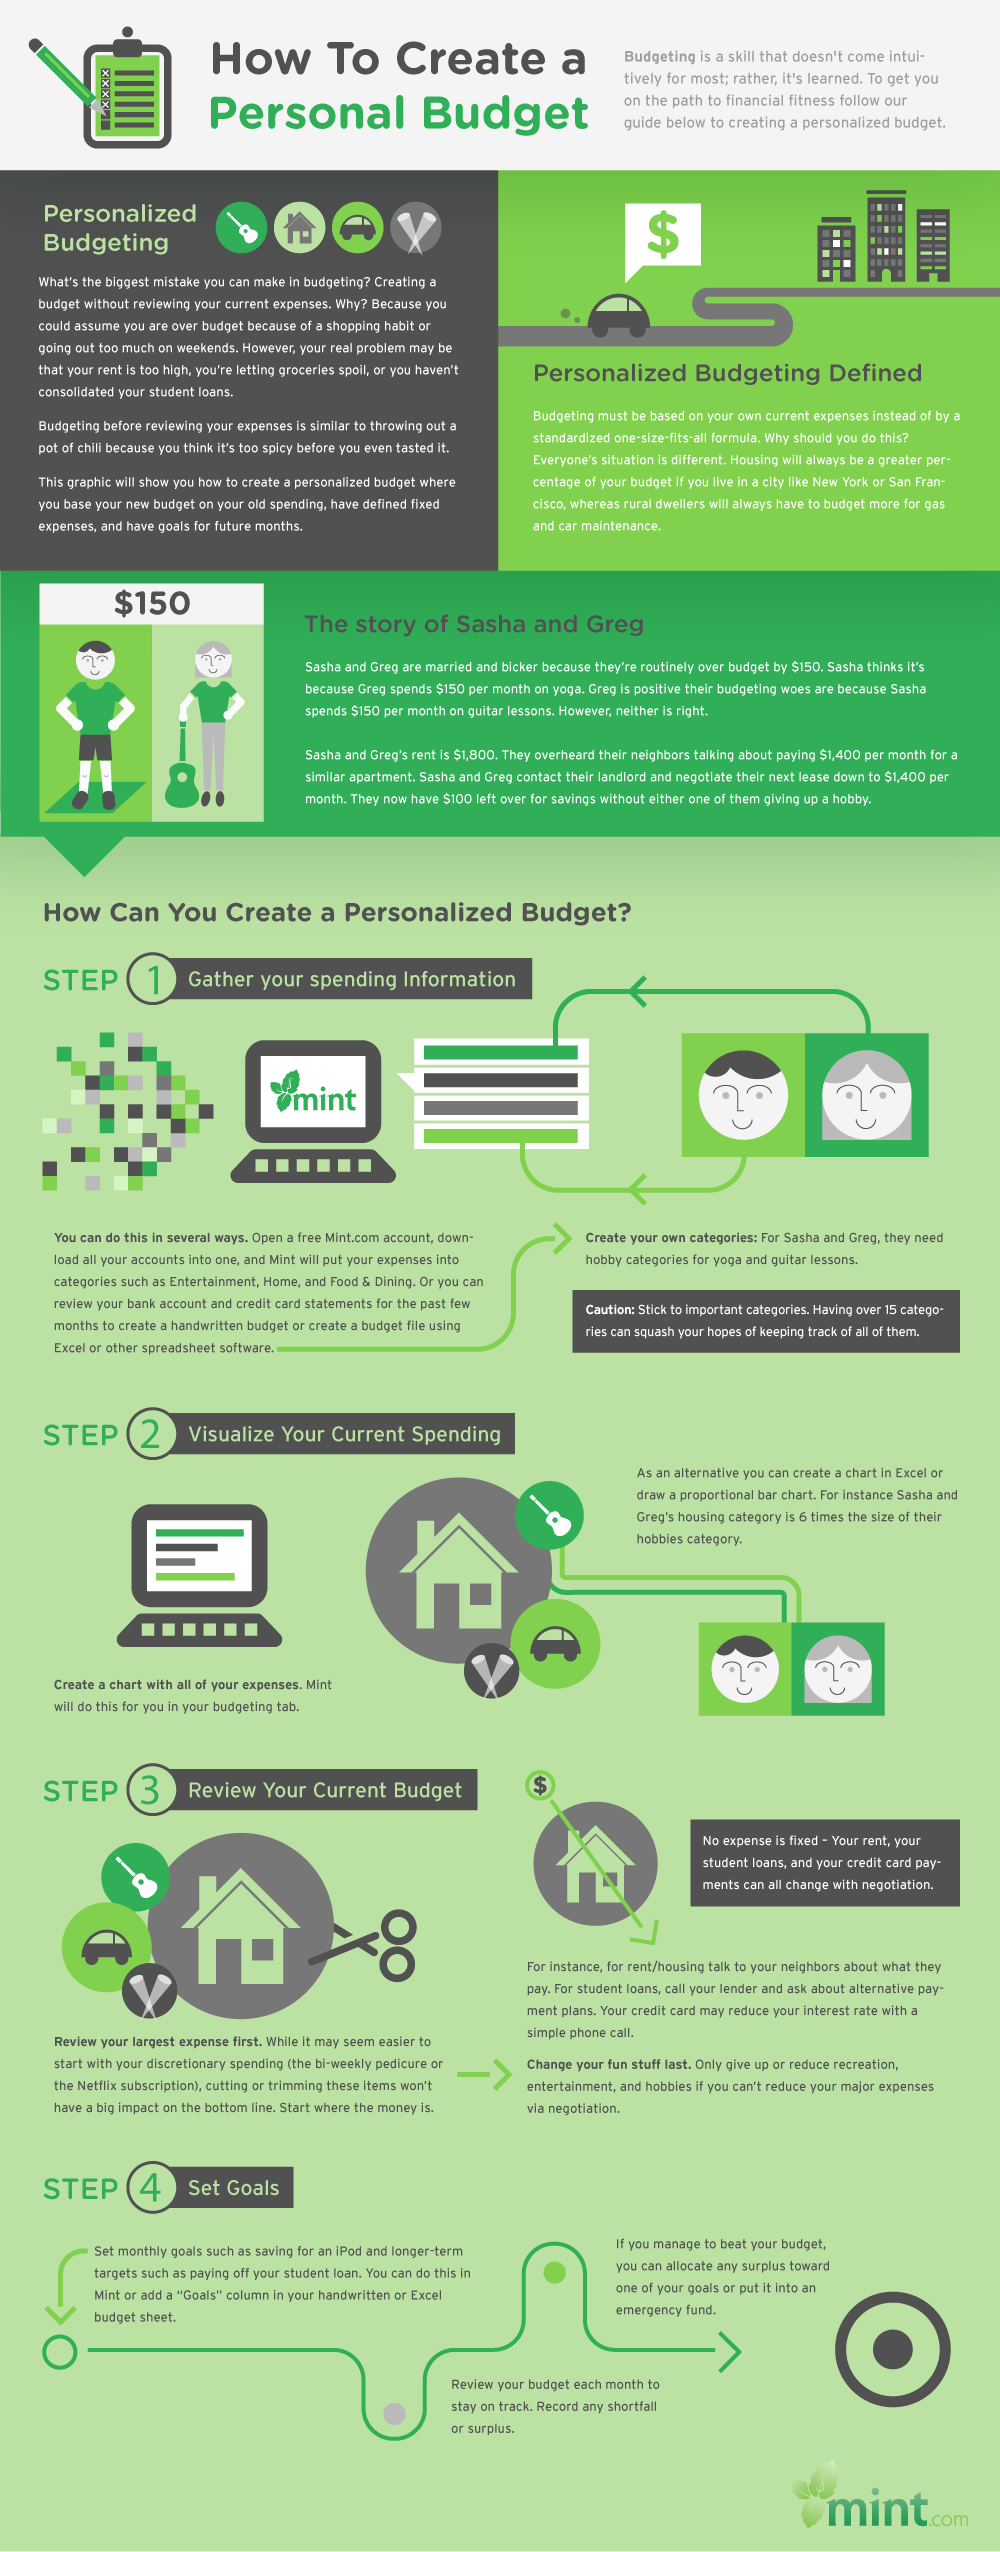 17 Best images about Personal Finance Infographics on Pinterest ...